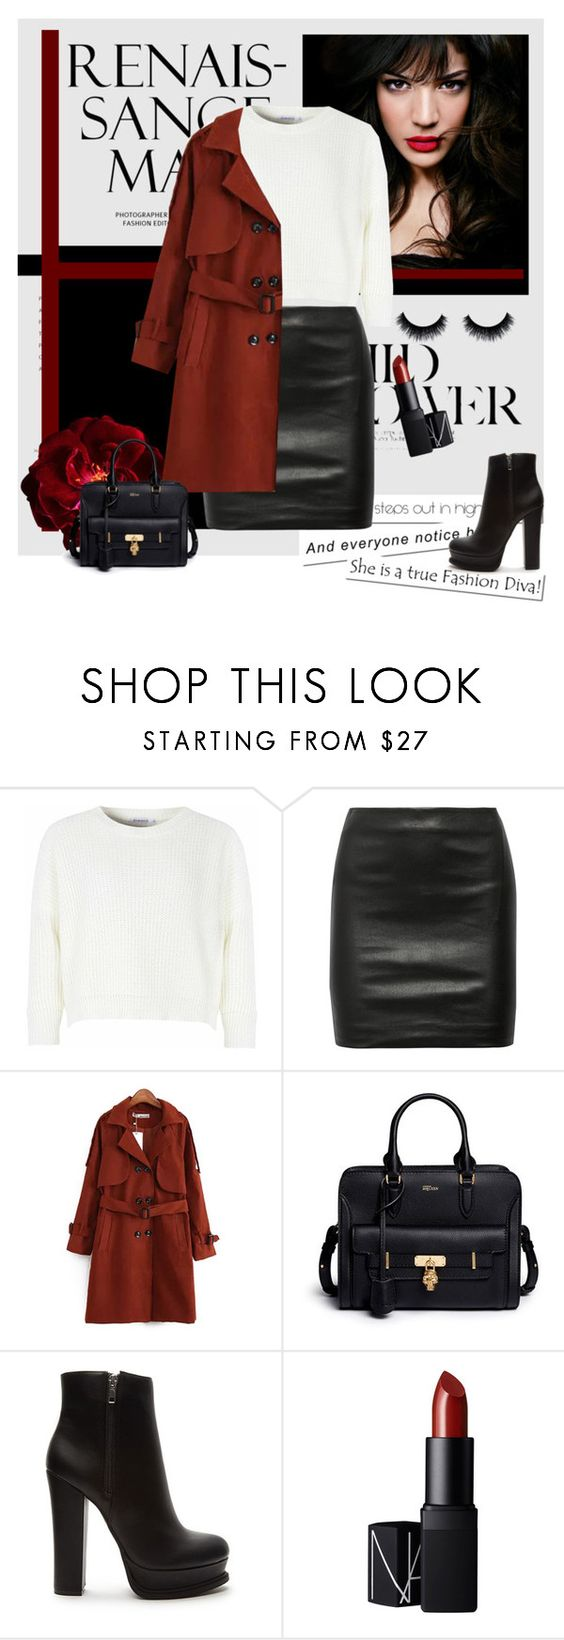 """OOTD#6"" by tjlillian ❤ liked on Polyvore featuring IVI, Glamorous, The Row, Chicnova Fashion, Alexander McQueen, Forever 21, NARS Cosmetics, ootd, Halloweenparty and Halloween2015"